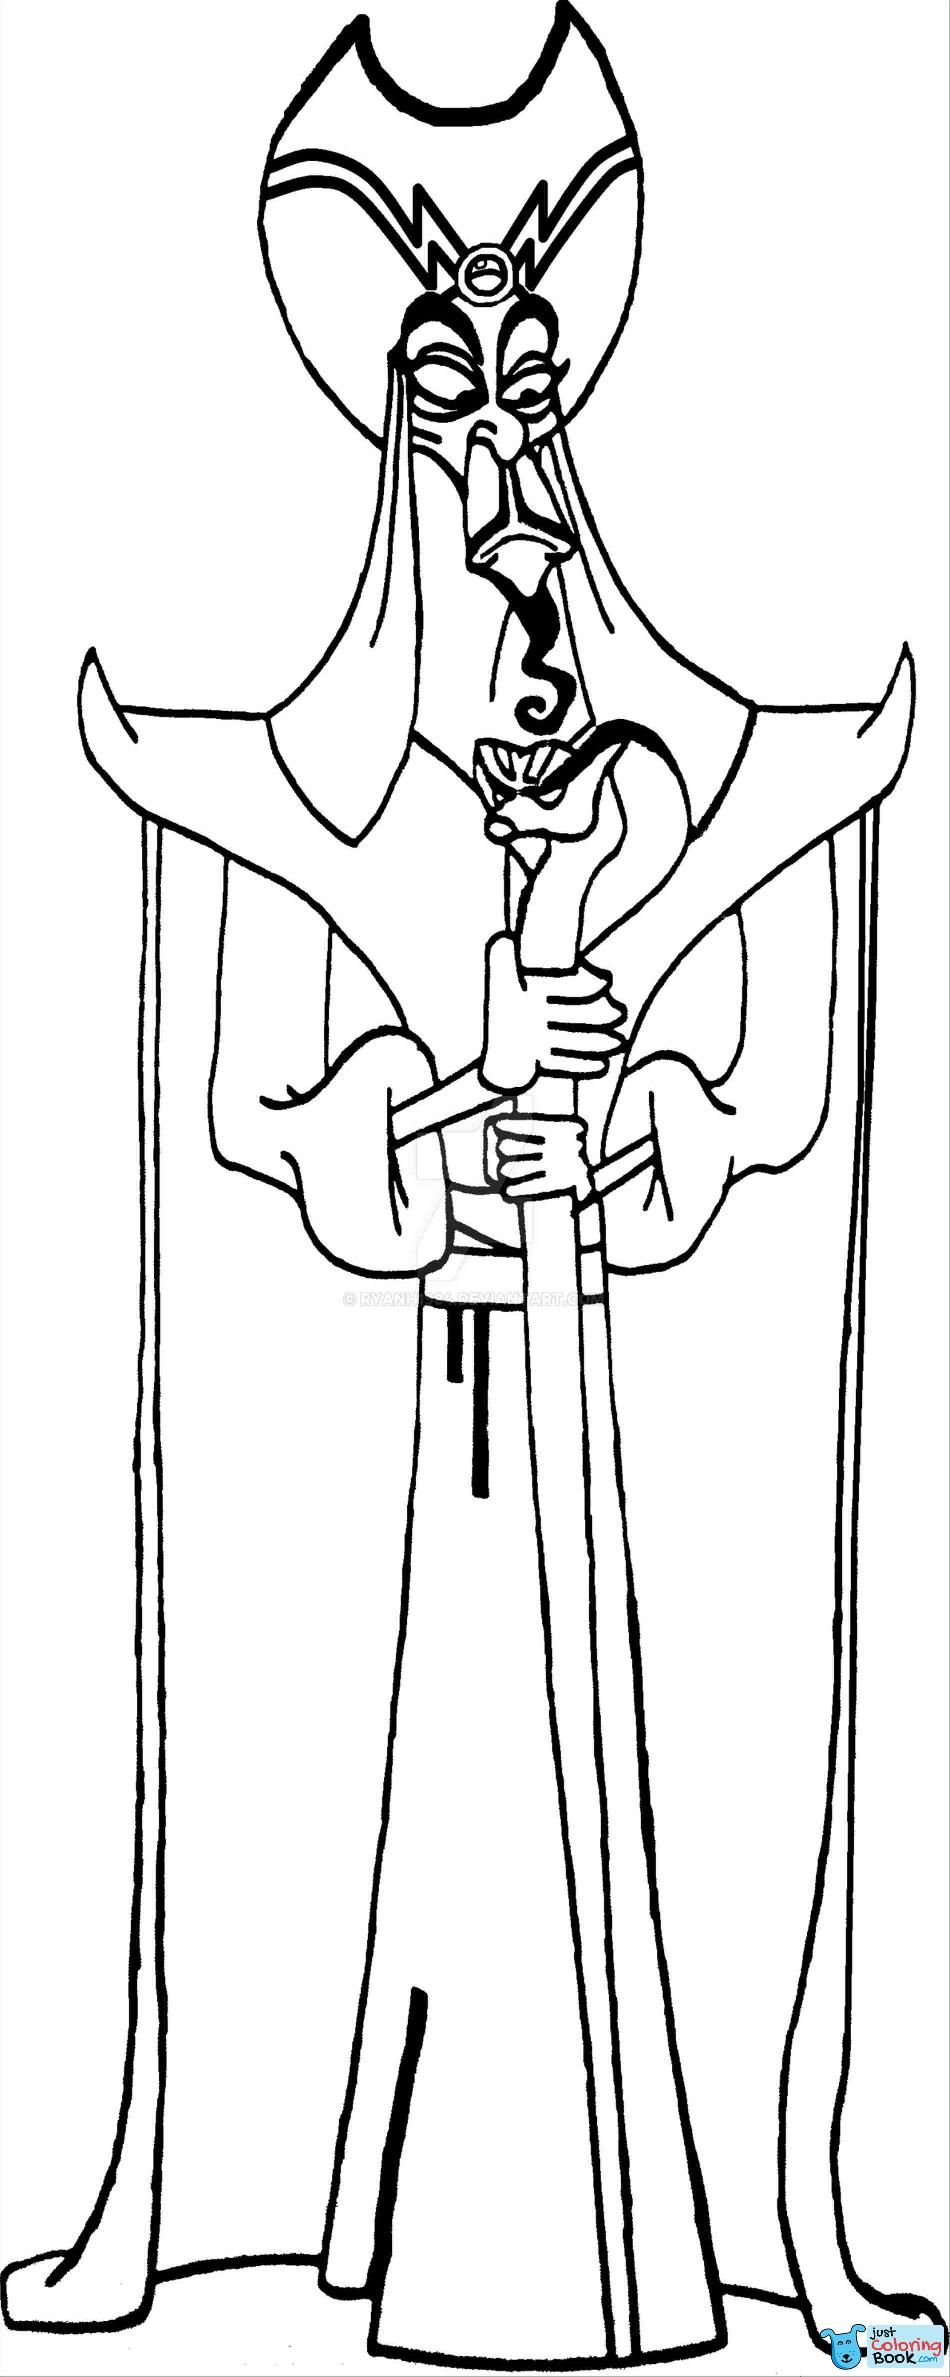 Free Jafar Coloring Pages Coloring Pages Disney Coloring Pages Coloring Pages For Kids